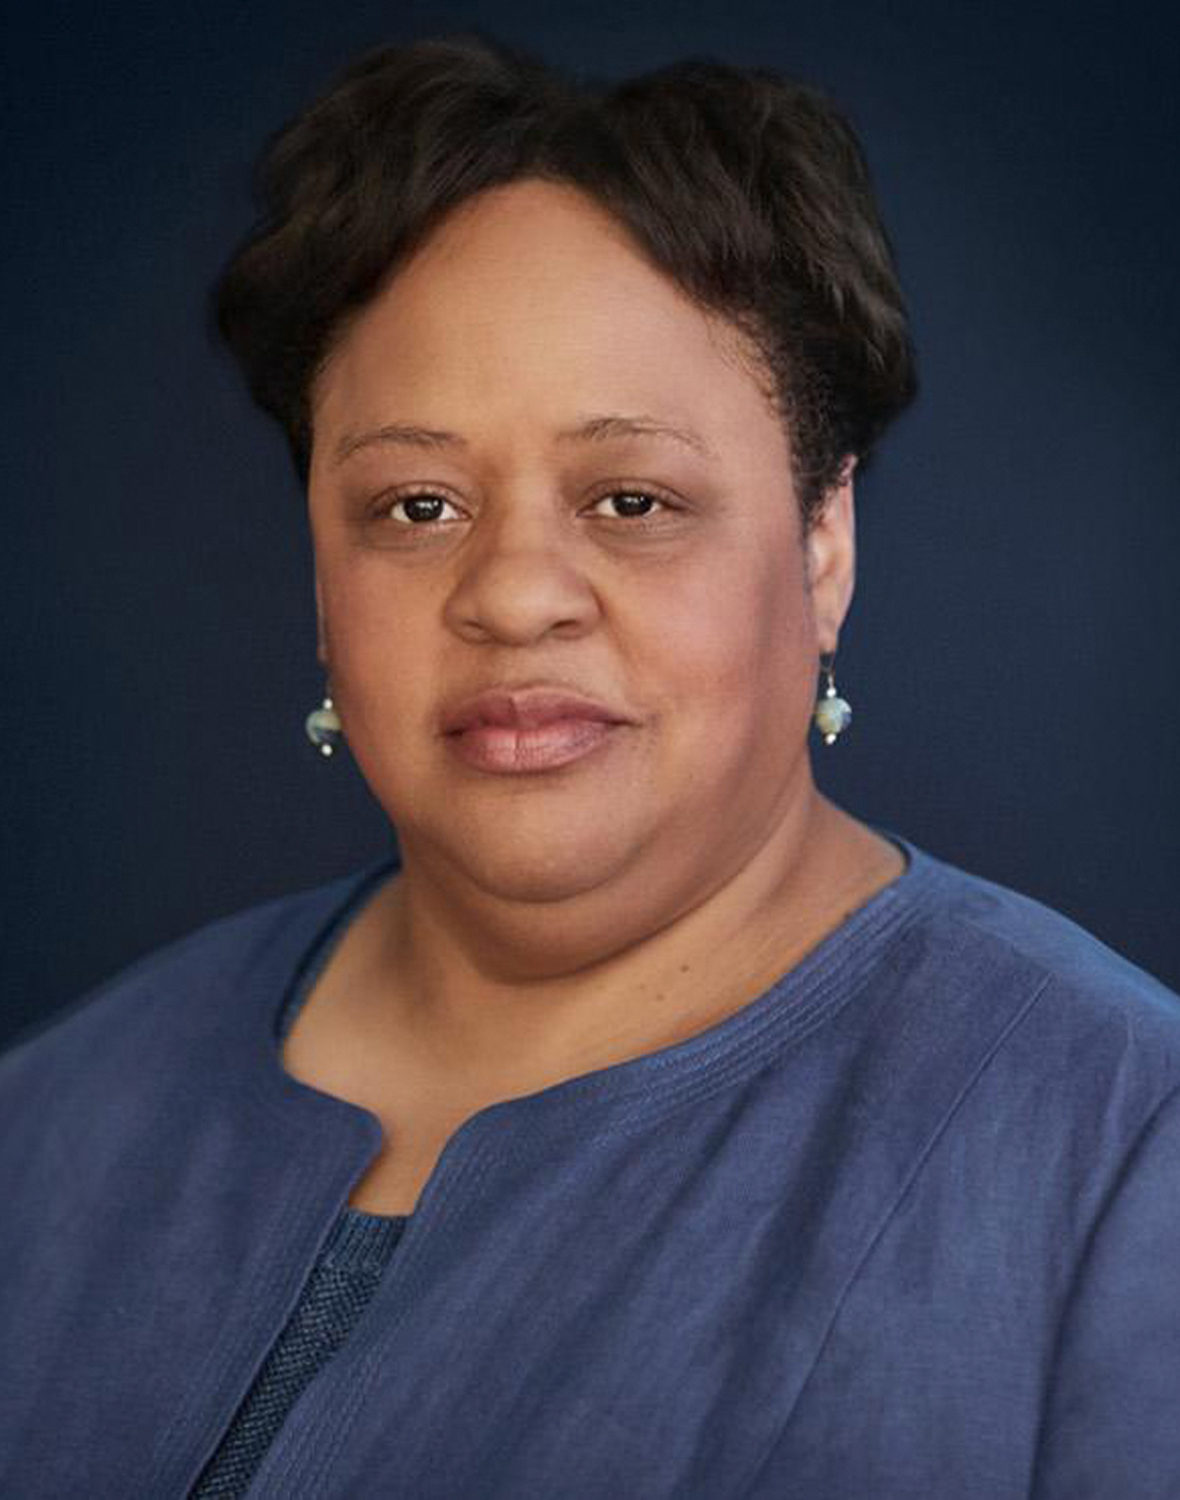 Audrey Murrell, former associate dean at Pitt's College of Business Administration, will serve as dean for Pitt's Honors College.